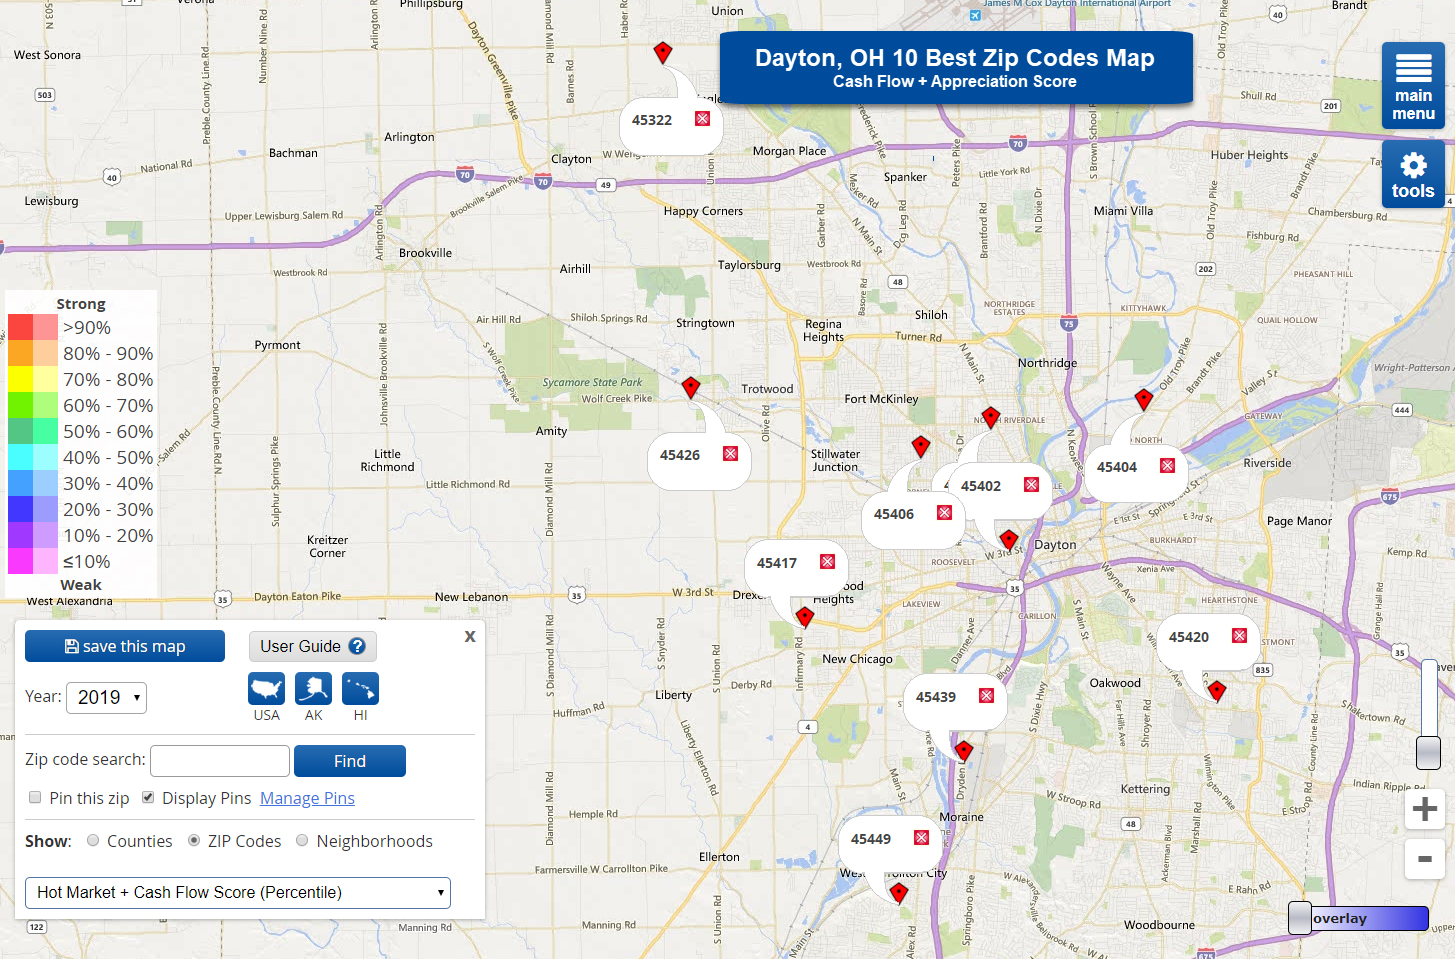 10 Best Zip Codes for Real Estate in Dayton, OH